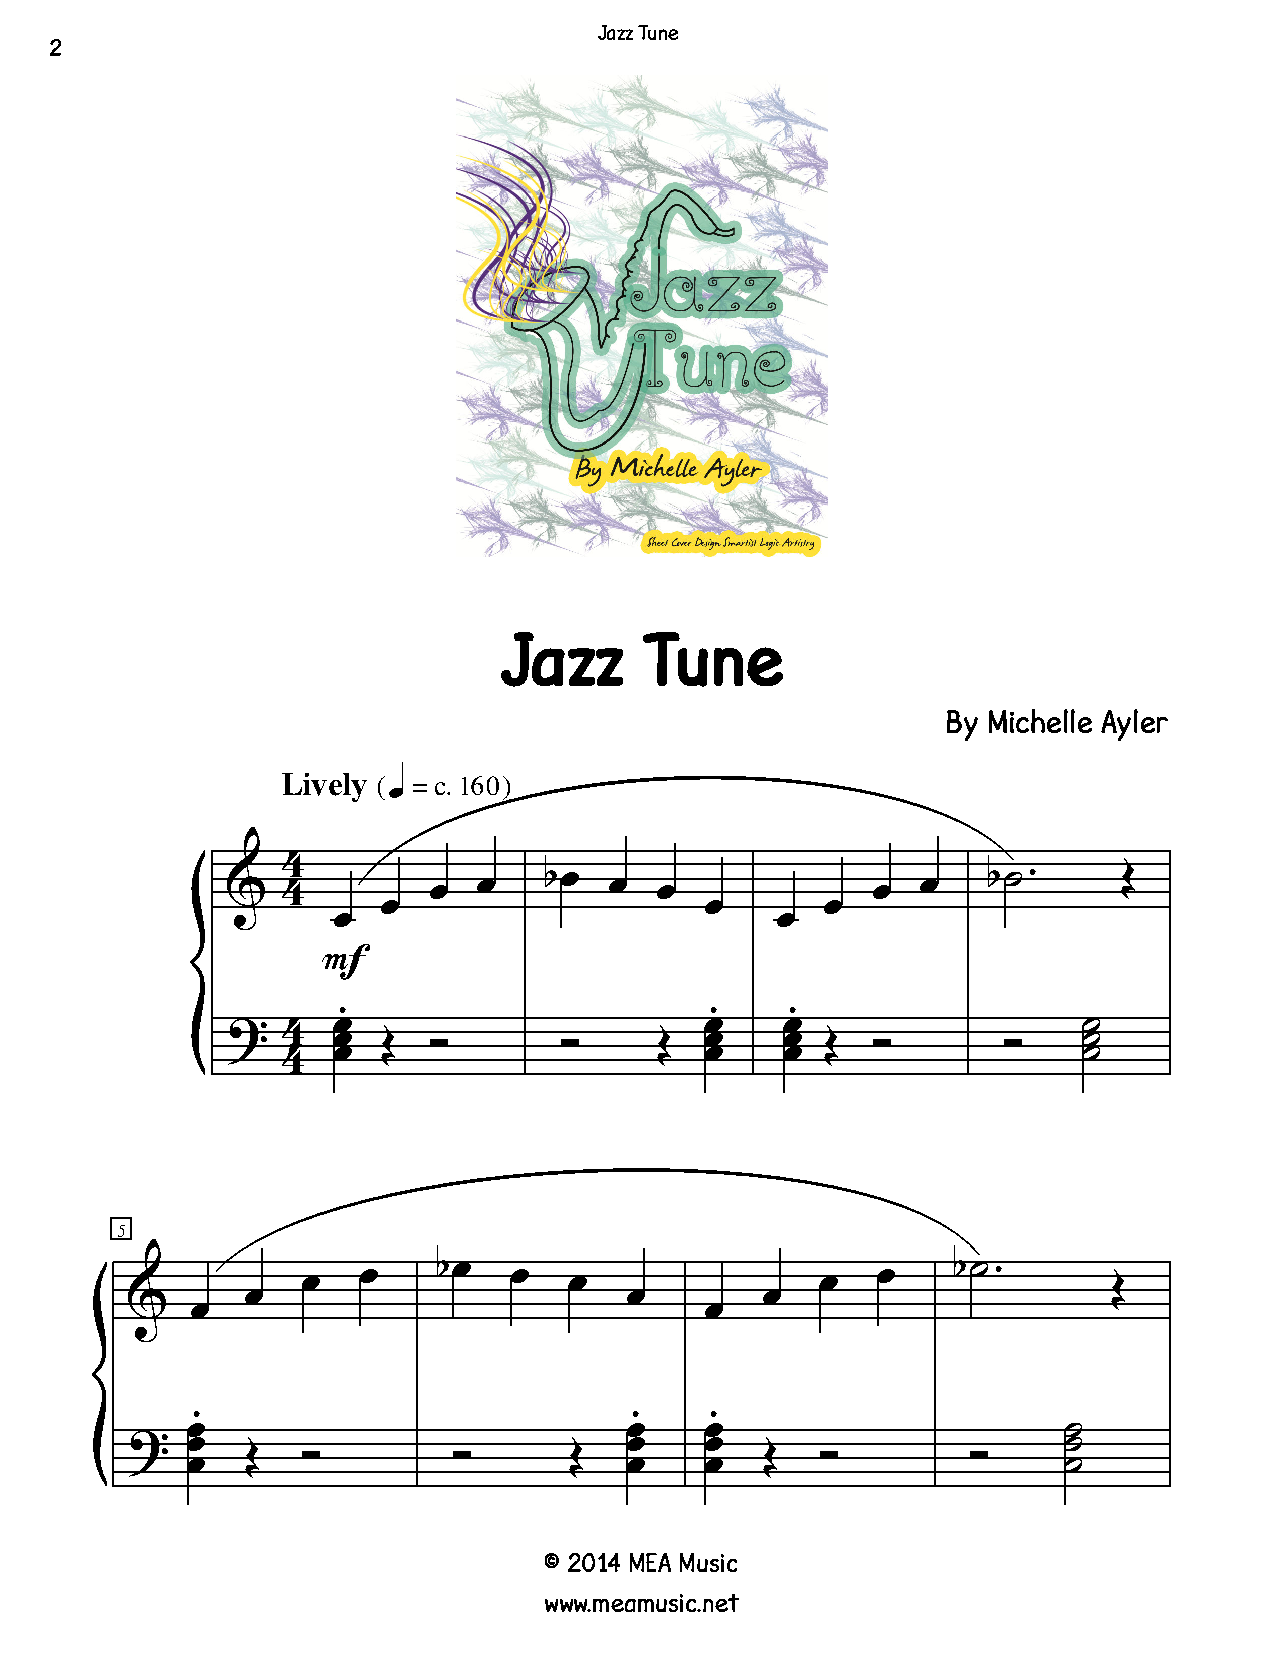 Jazz Tune Piano Sheet Music Solo First Page Sample Of A